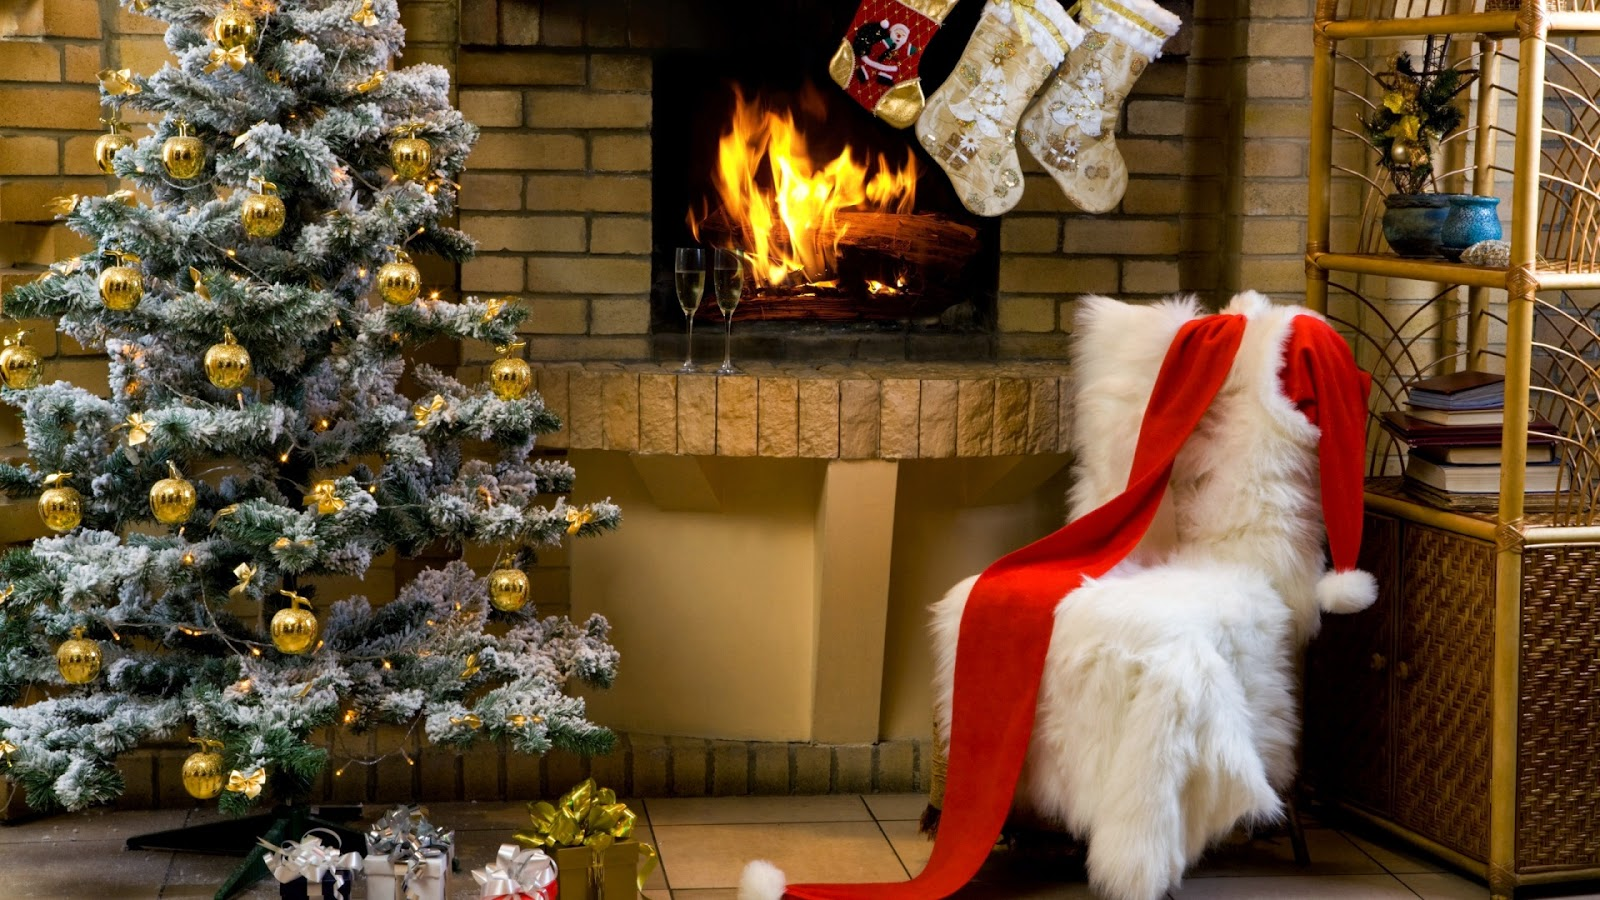 Snow-theme-Christmas-tree-decorated-with-golden-balls-near-fireplace-mantel-image.jpg